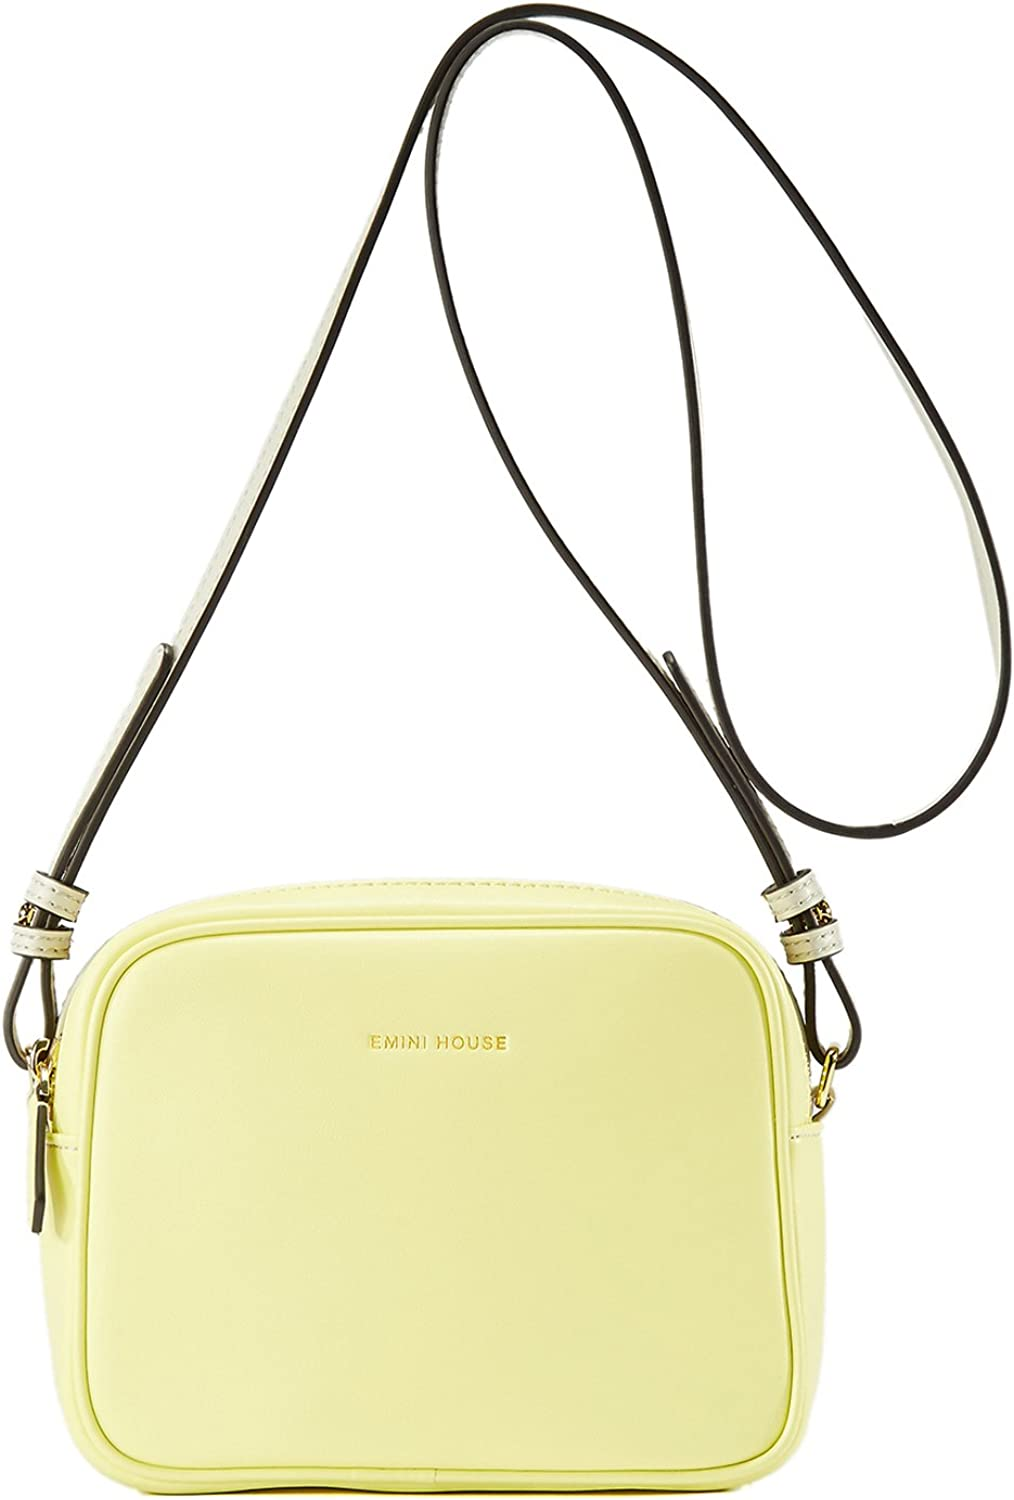 EMINI HOUSE Concise Style Shoulder Bag with Spliced color Women Bag